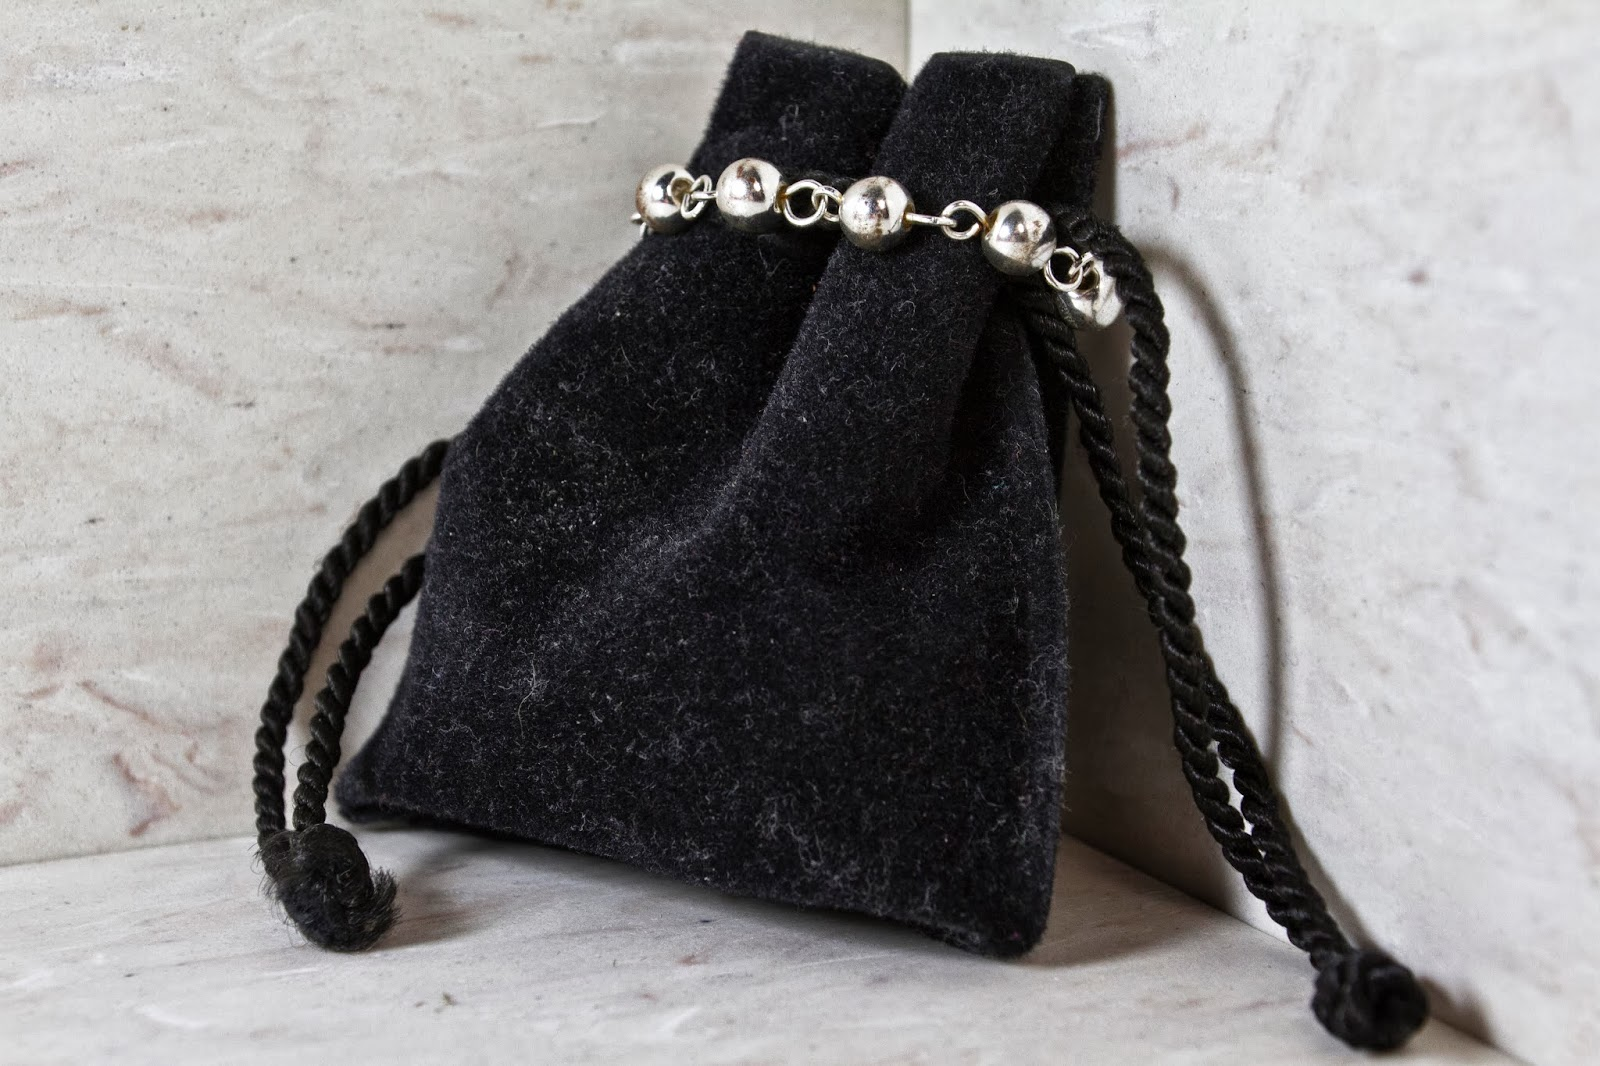 mysterious bag left chained together only to discover a bag of severed legs